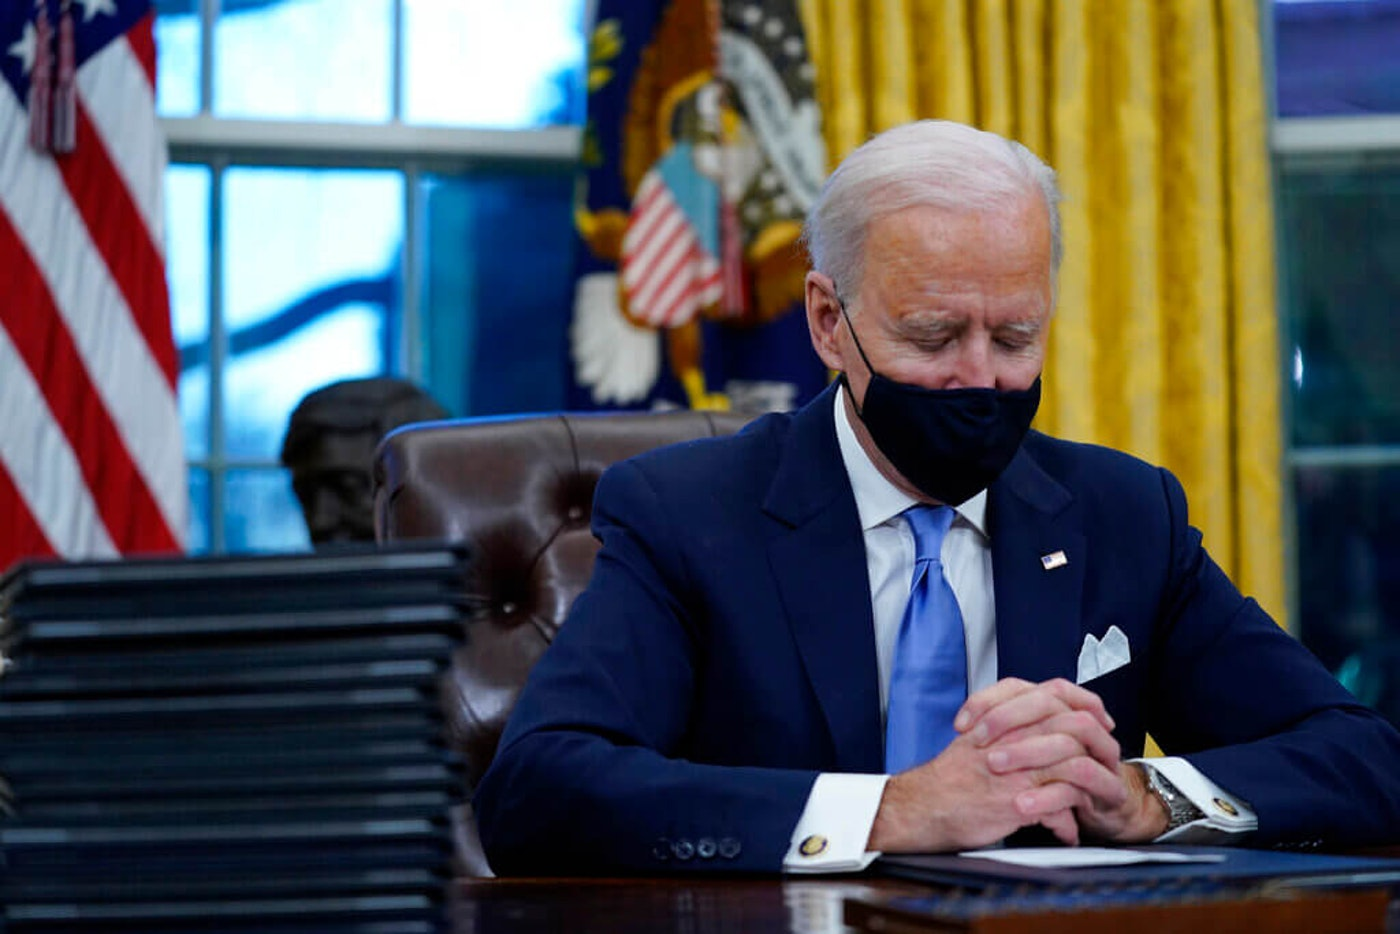 Biden signs executive orders dismanting the 1776 Commission and report